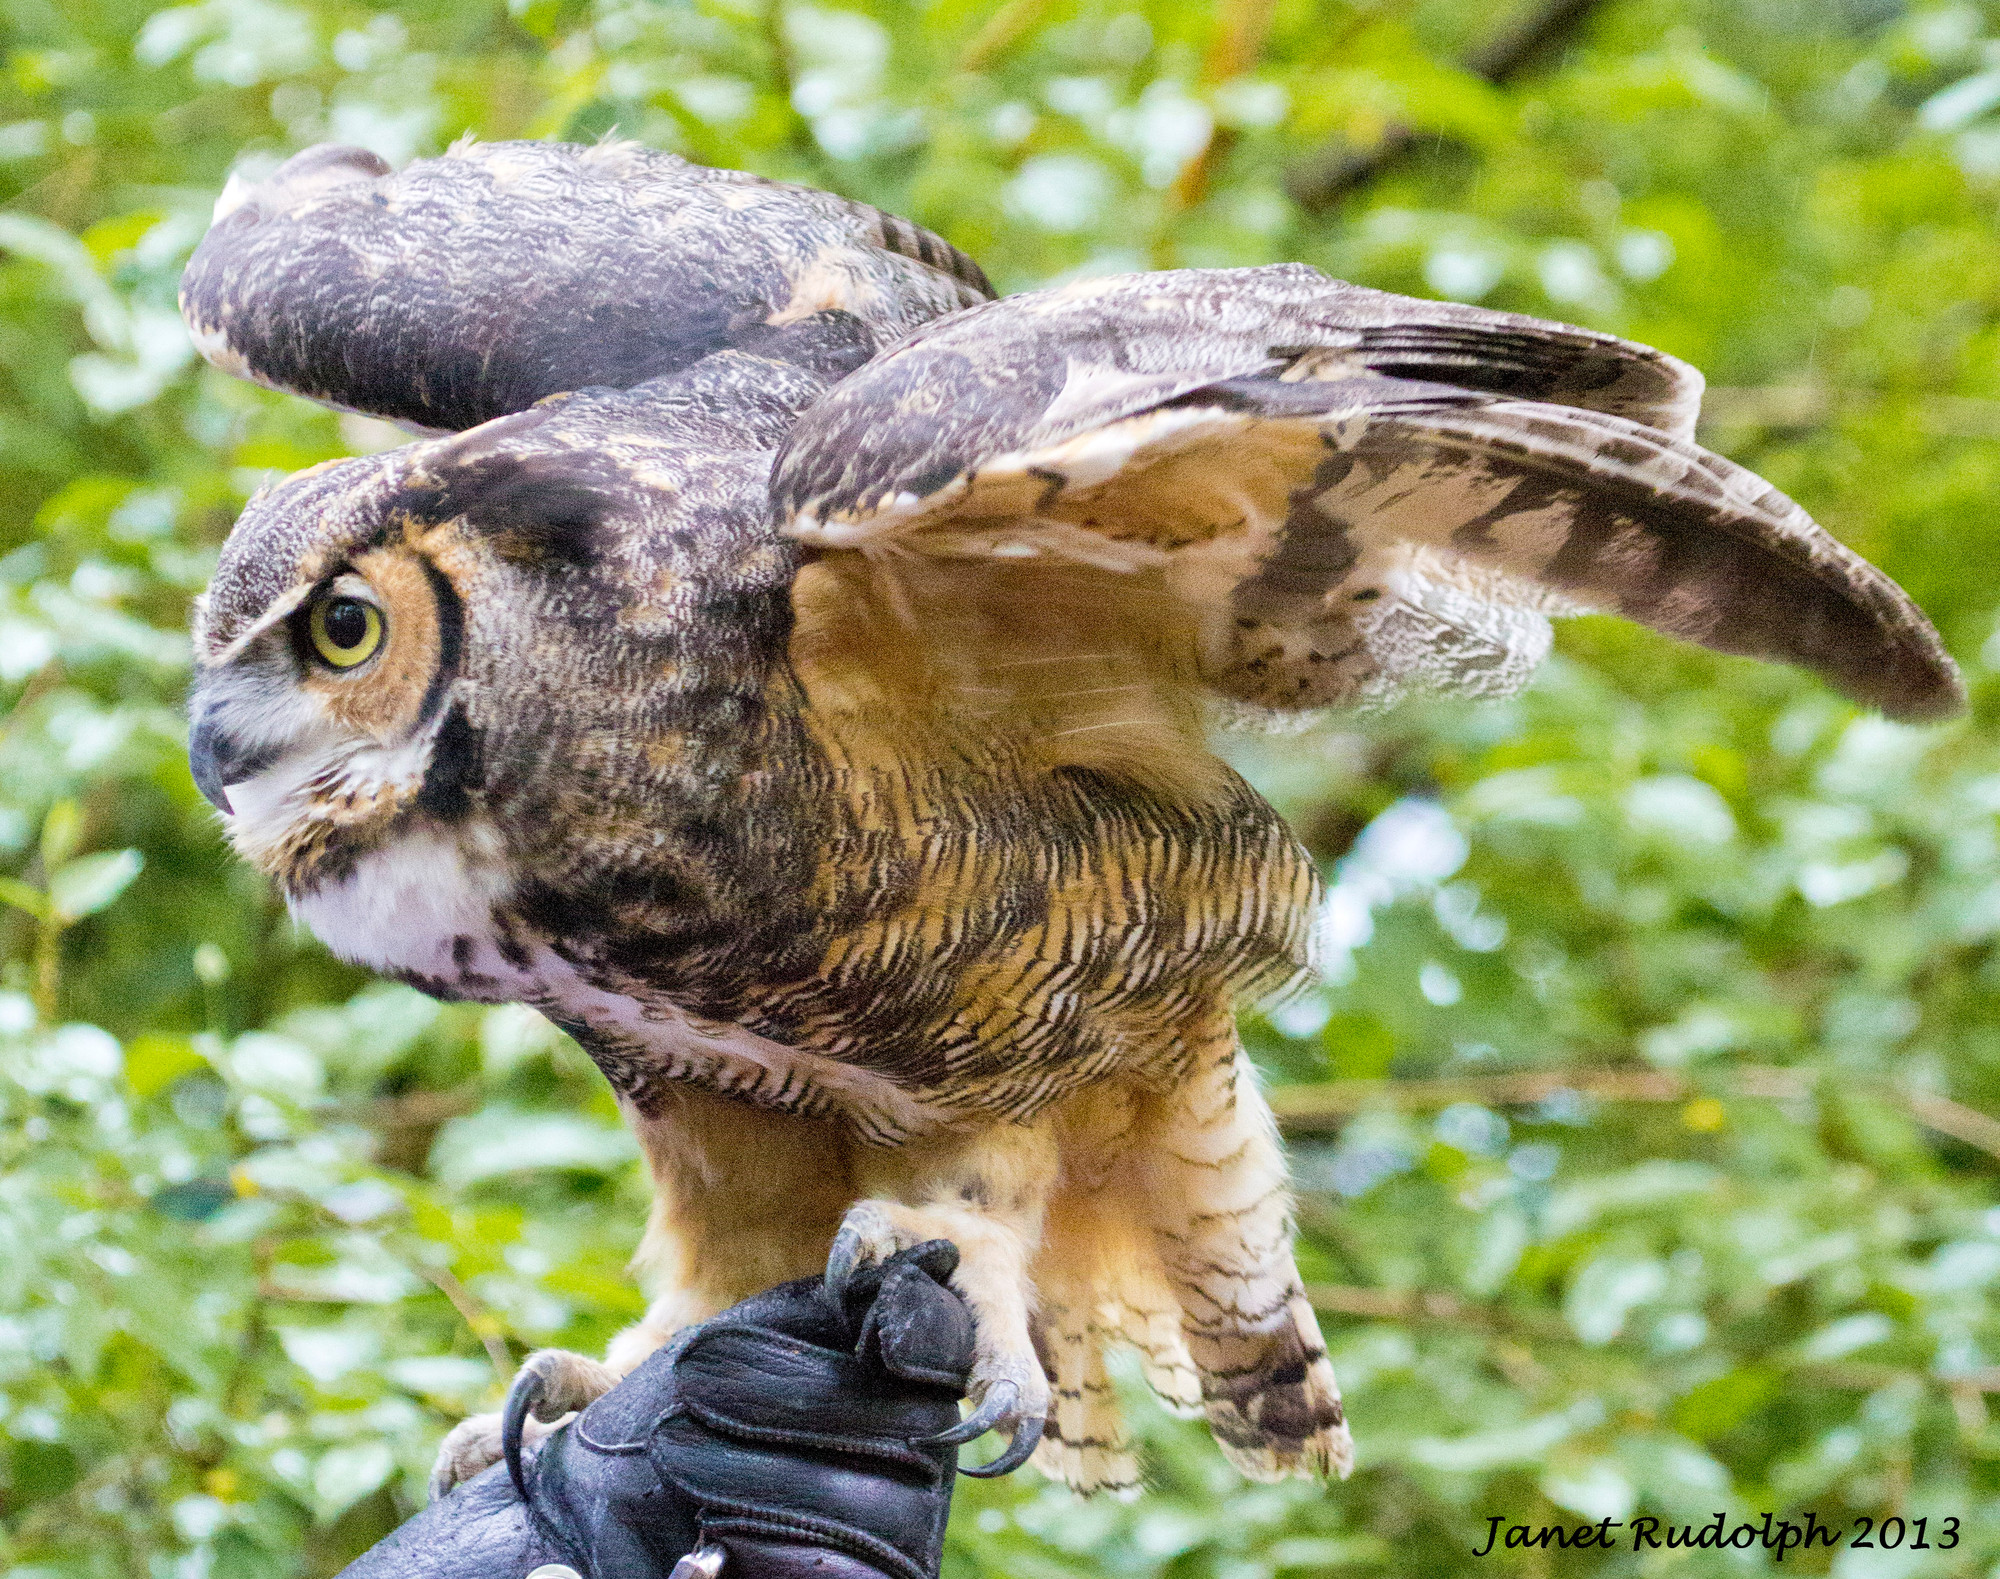 A Great Horned Owl engages visitors at the sanctuary.